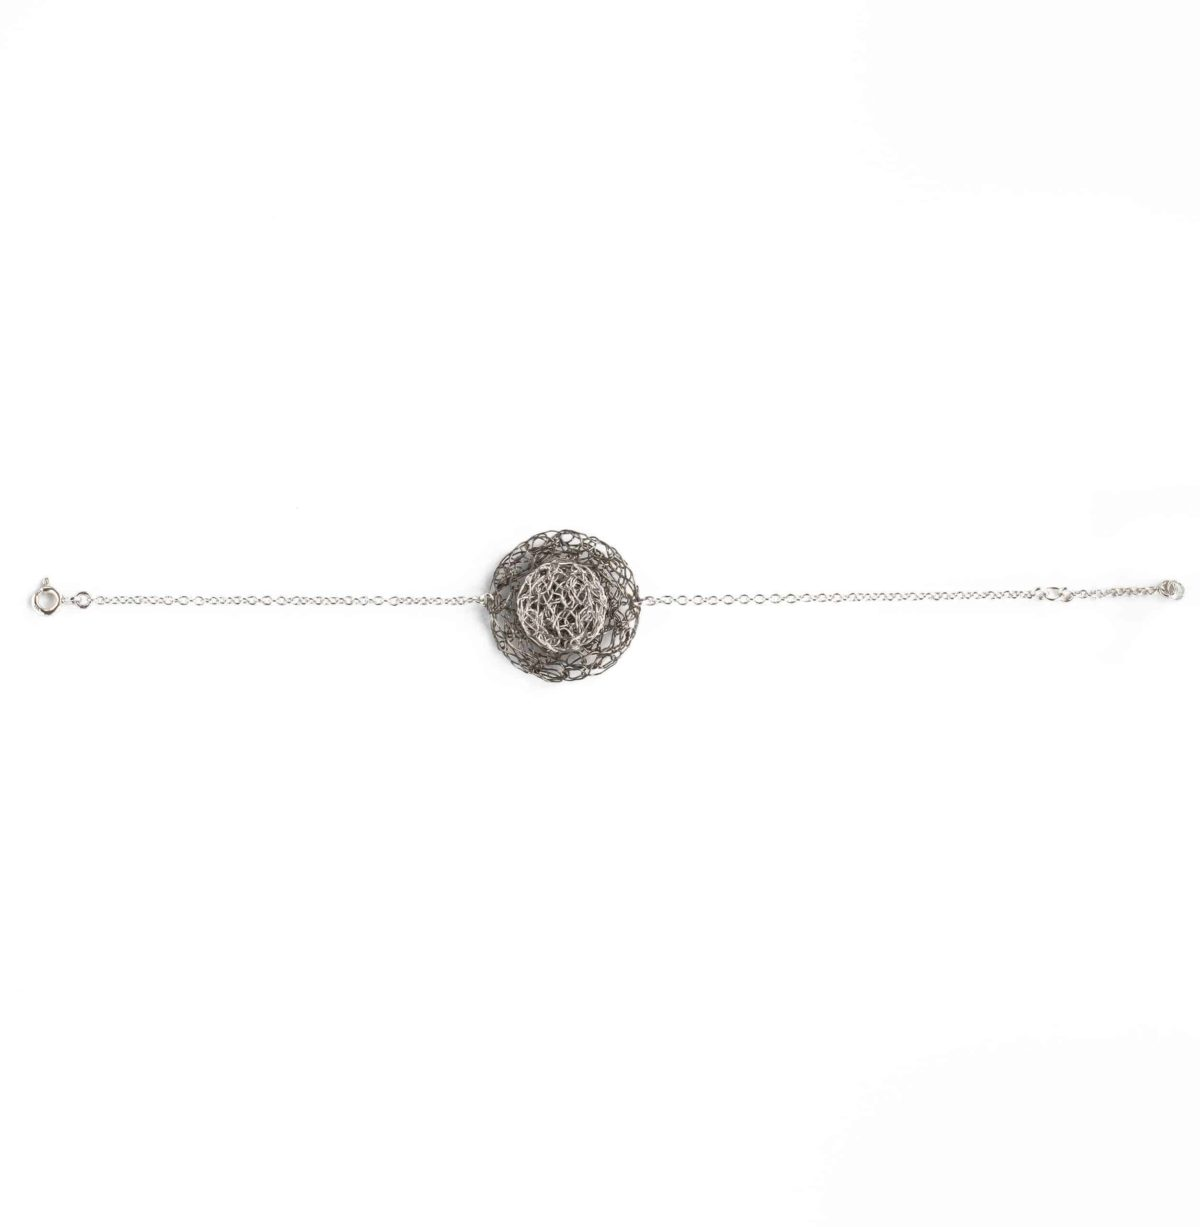 round charm bracelet in silver color